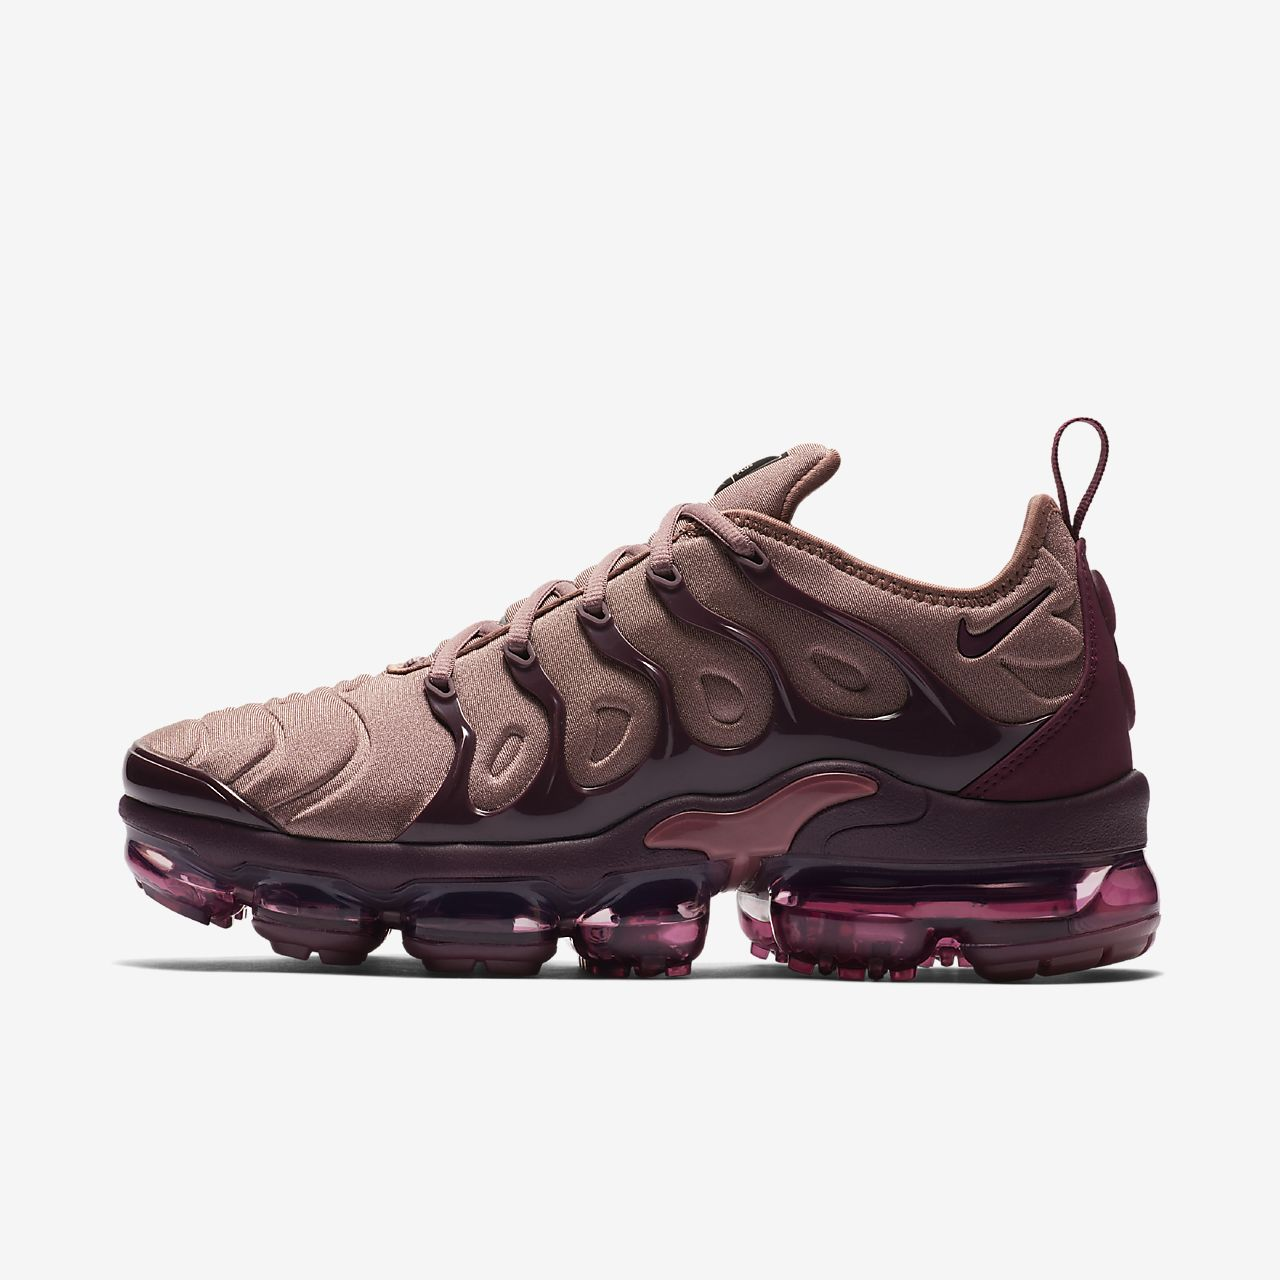 442344de50c56b ... greece nike air vapormax plus womens shoe 60c4c 90464 ...